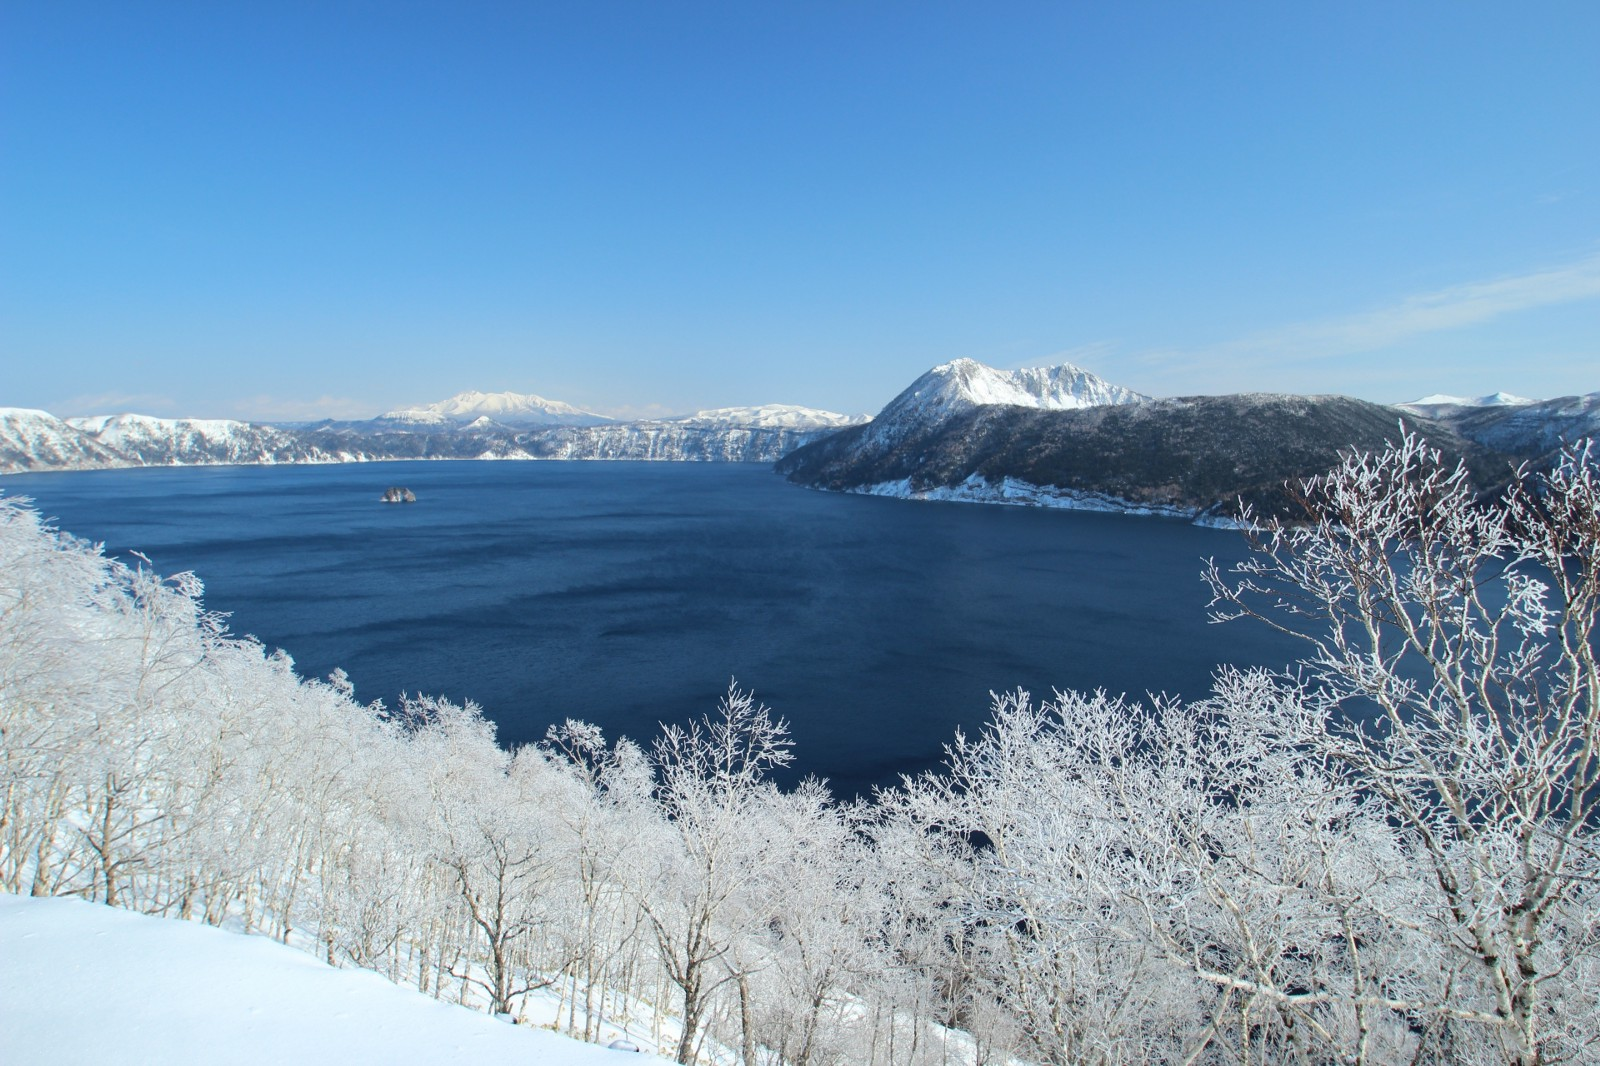 Lake Mashu covered with white snow during winter